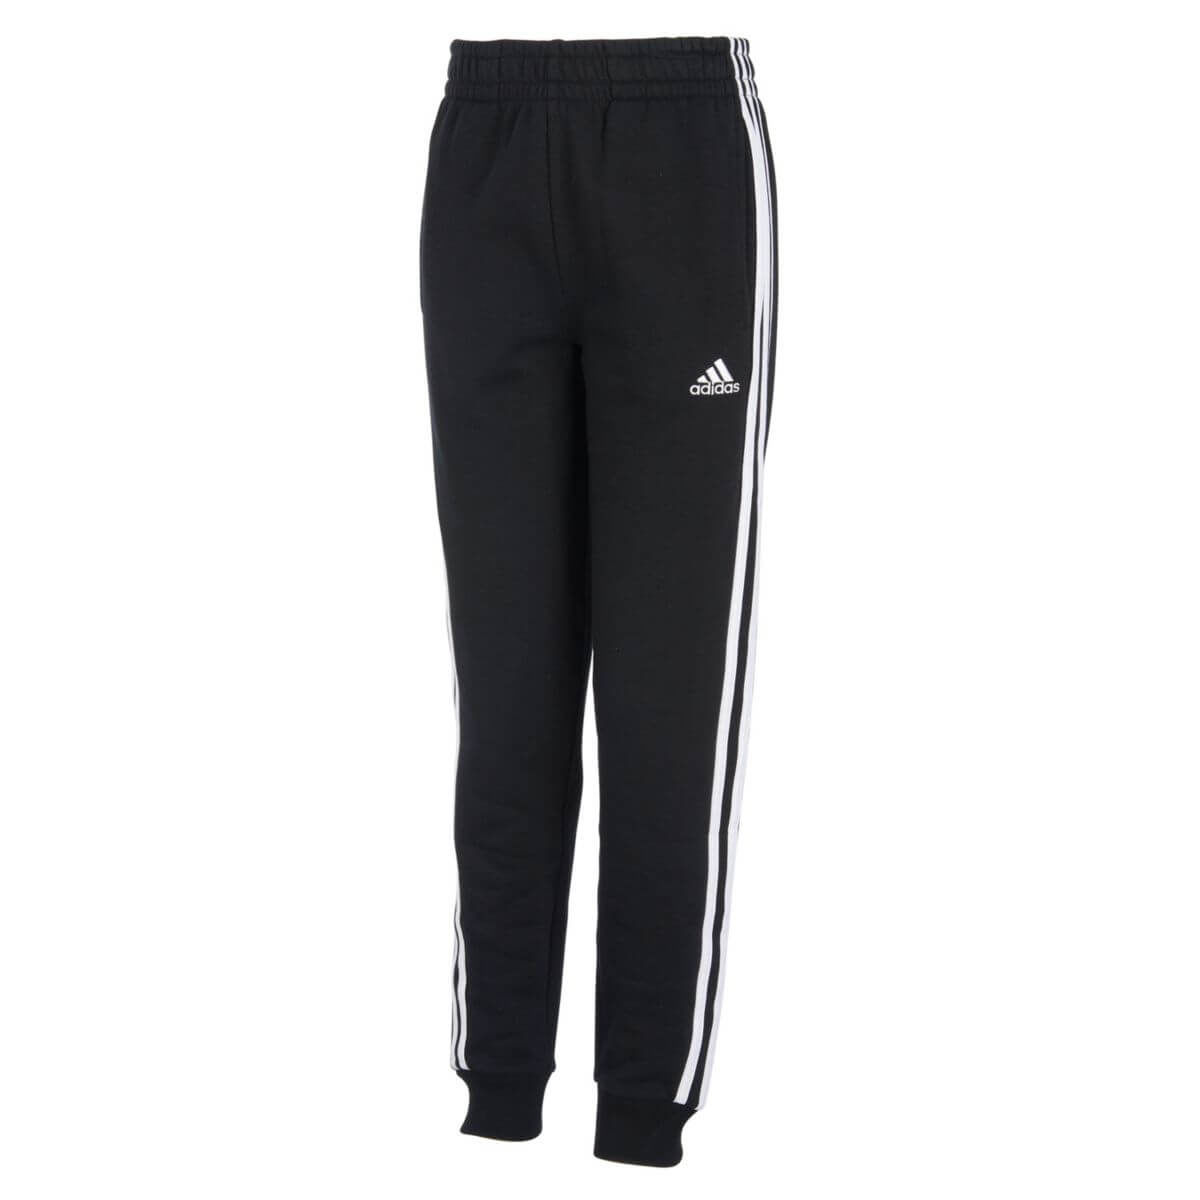 adidas 3 Stripes Boys Cotton Jogger